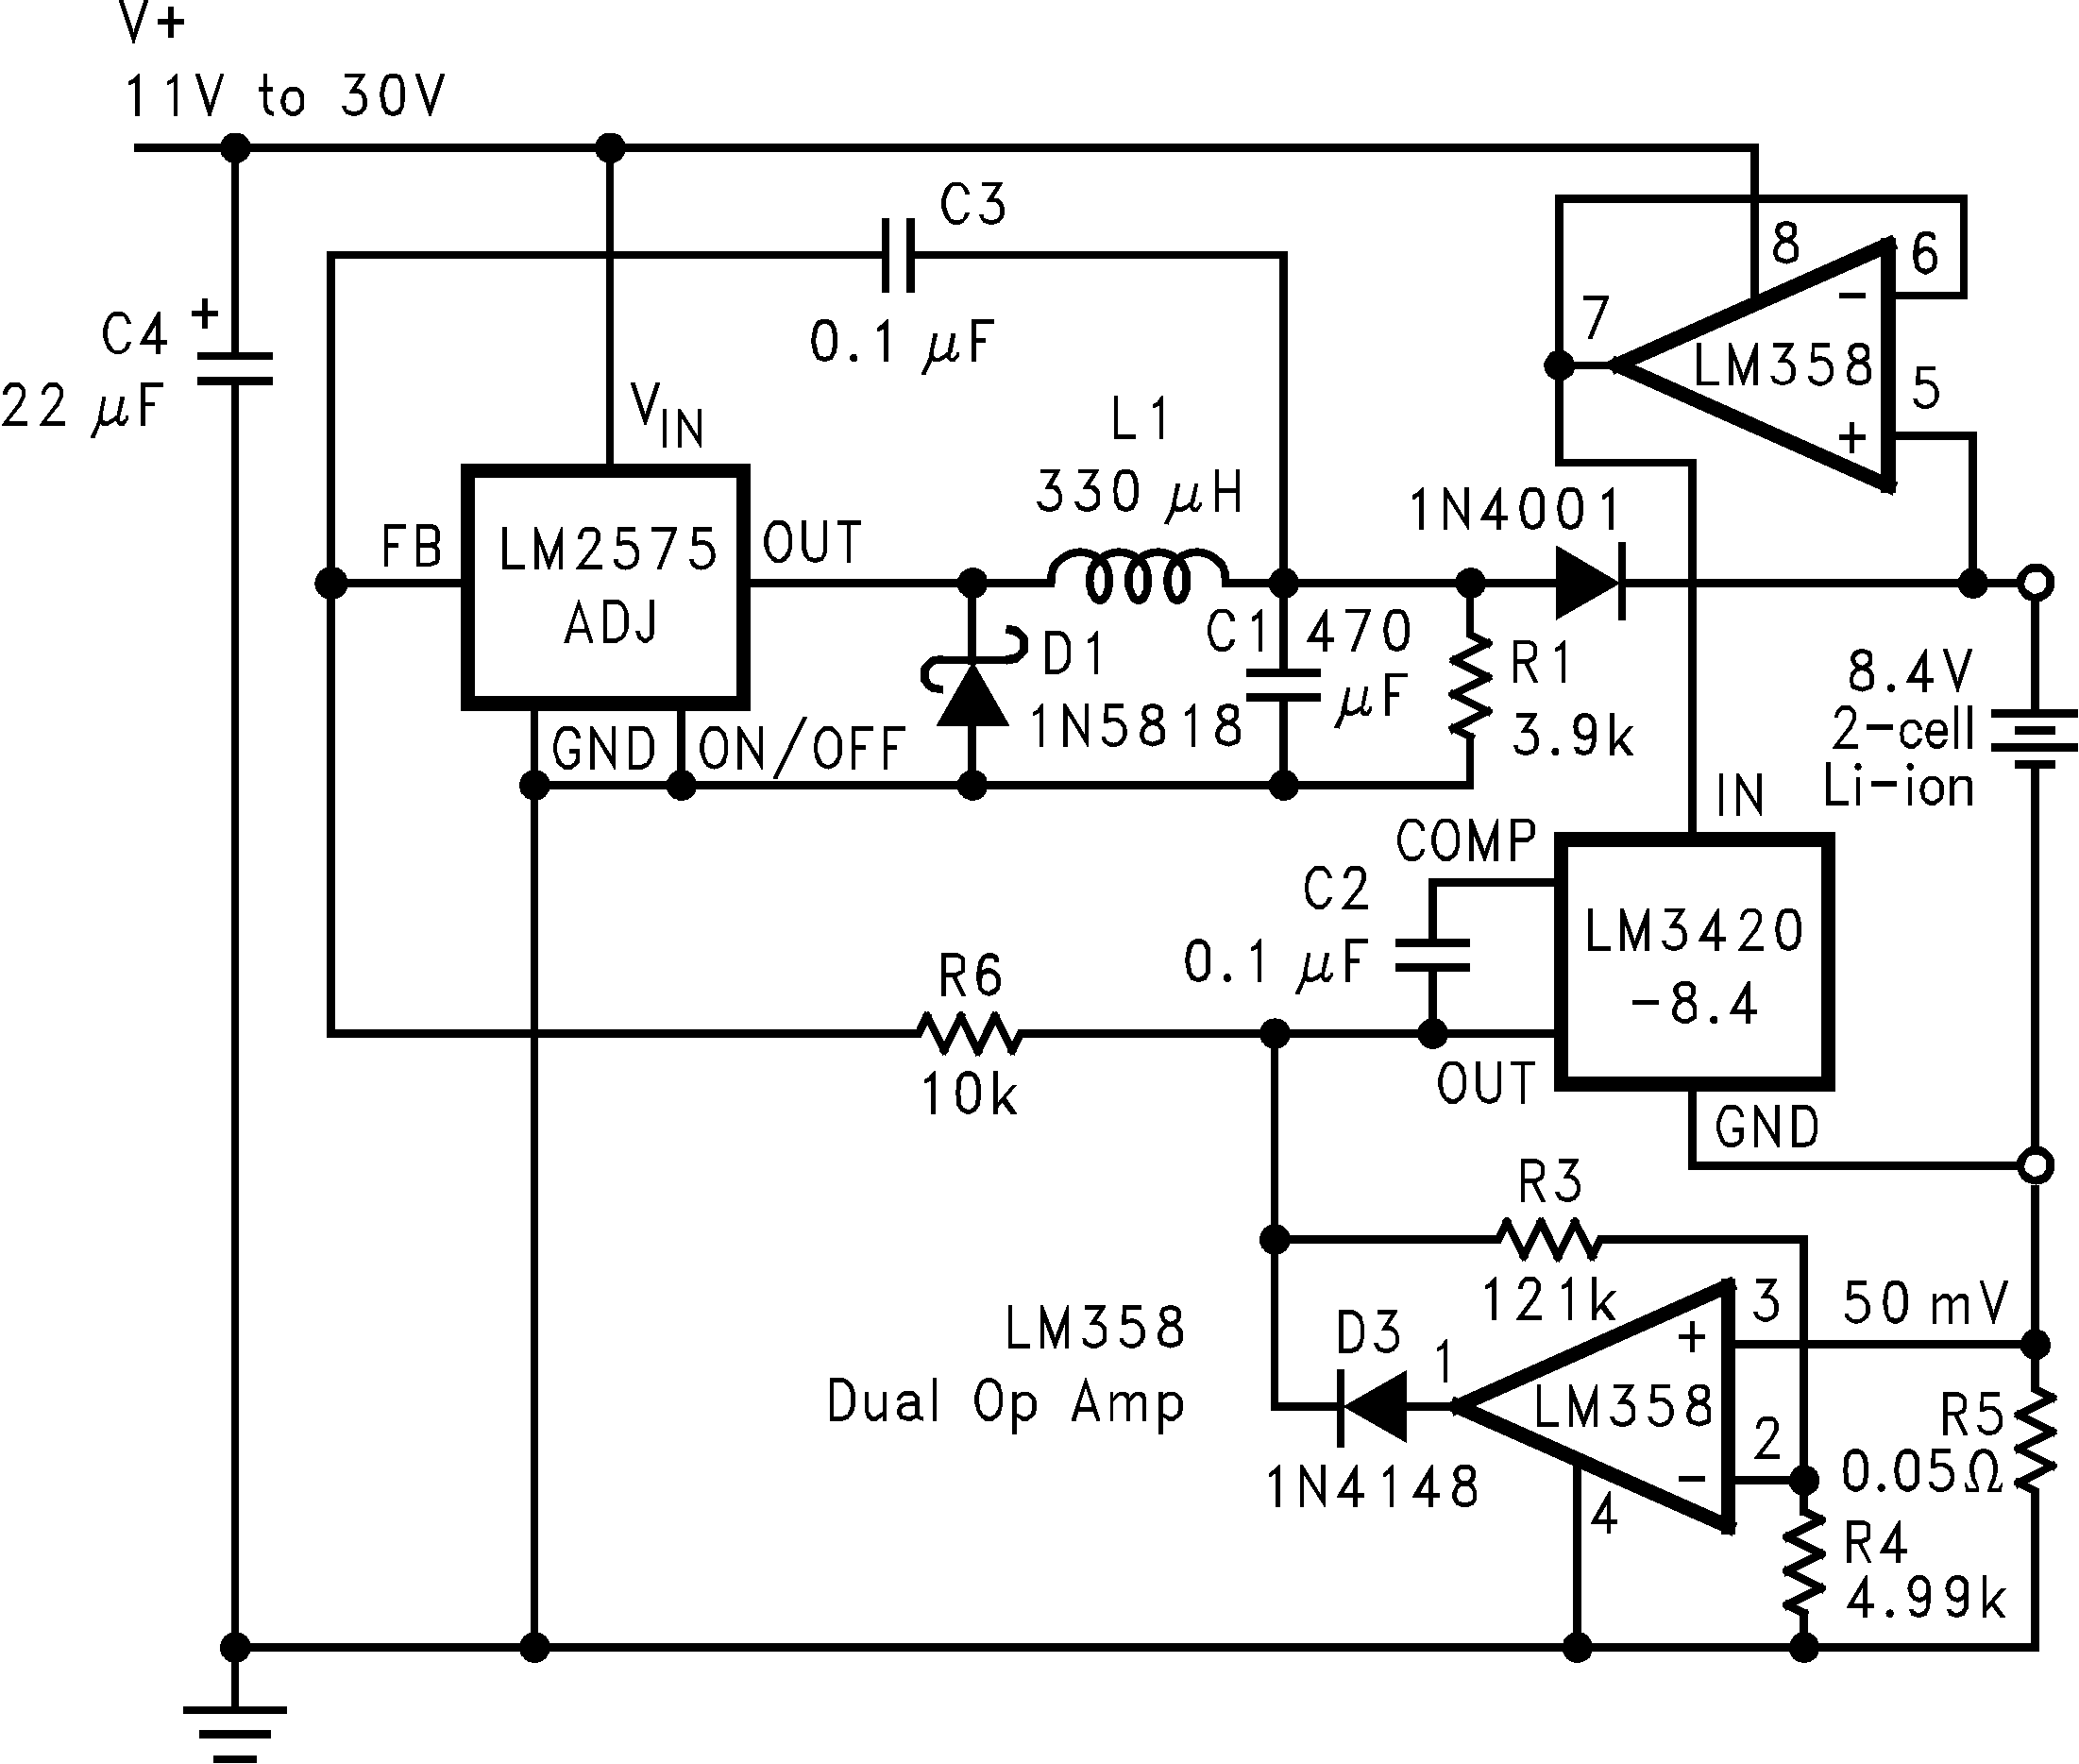 Lm3420 Current And Voltage In A Series Circuit 01235912